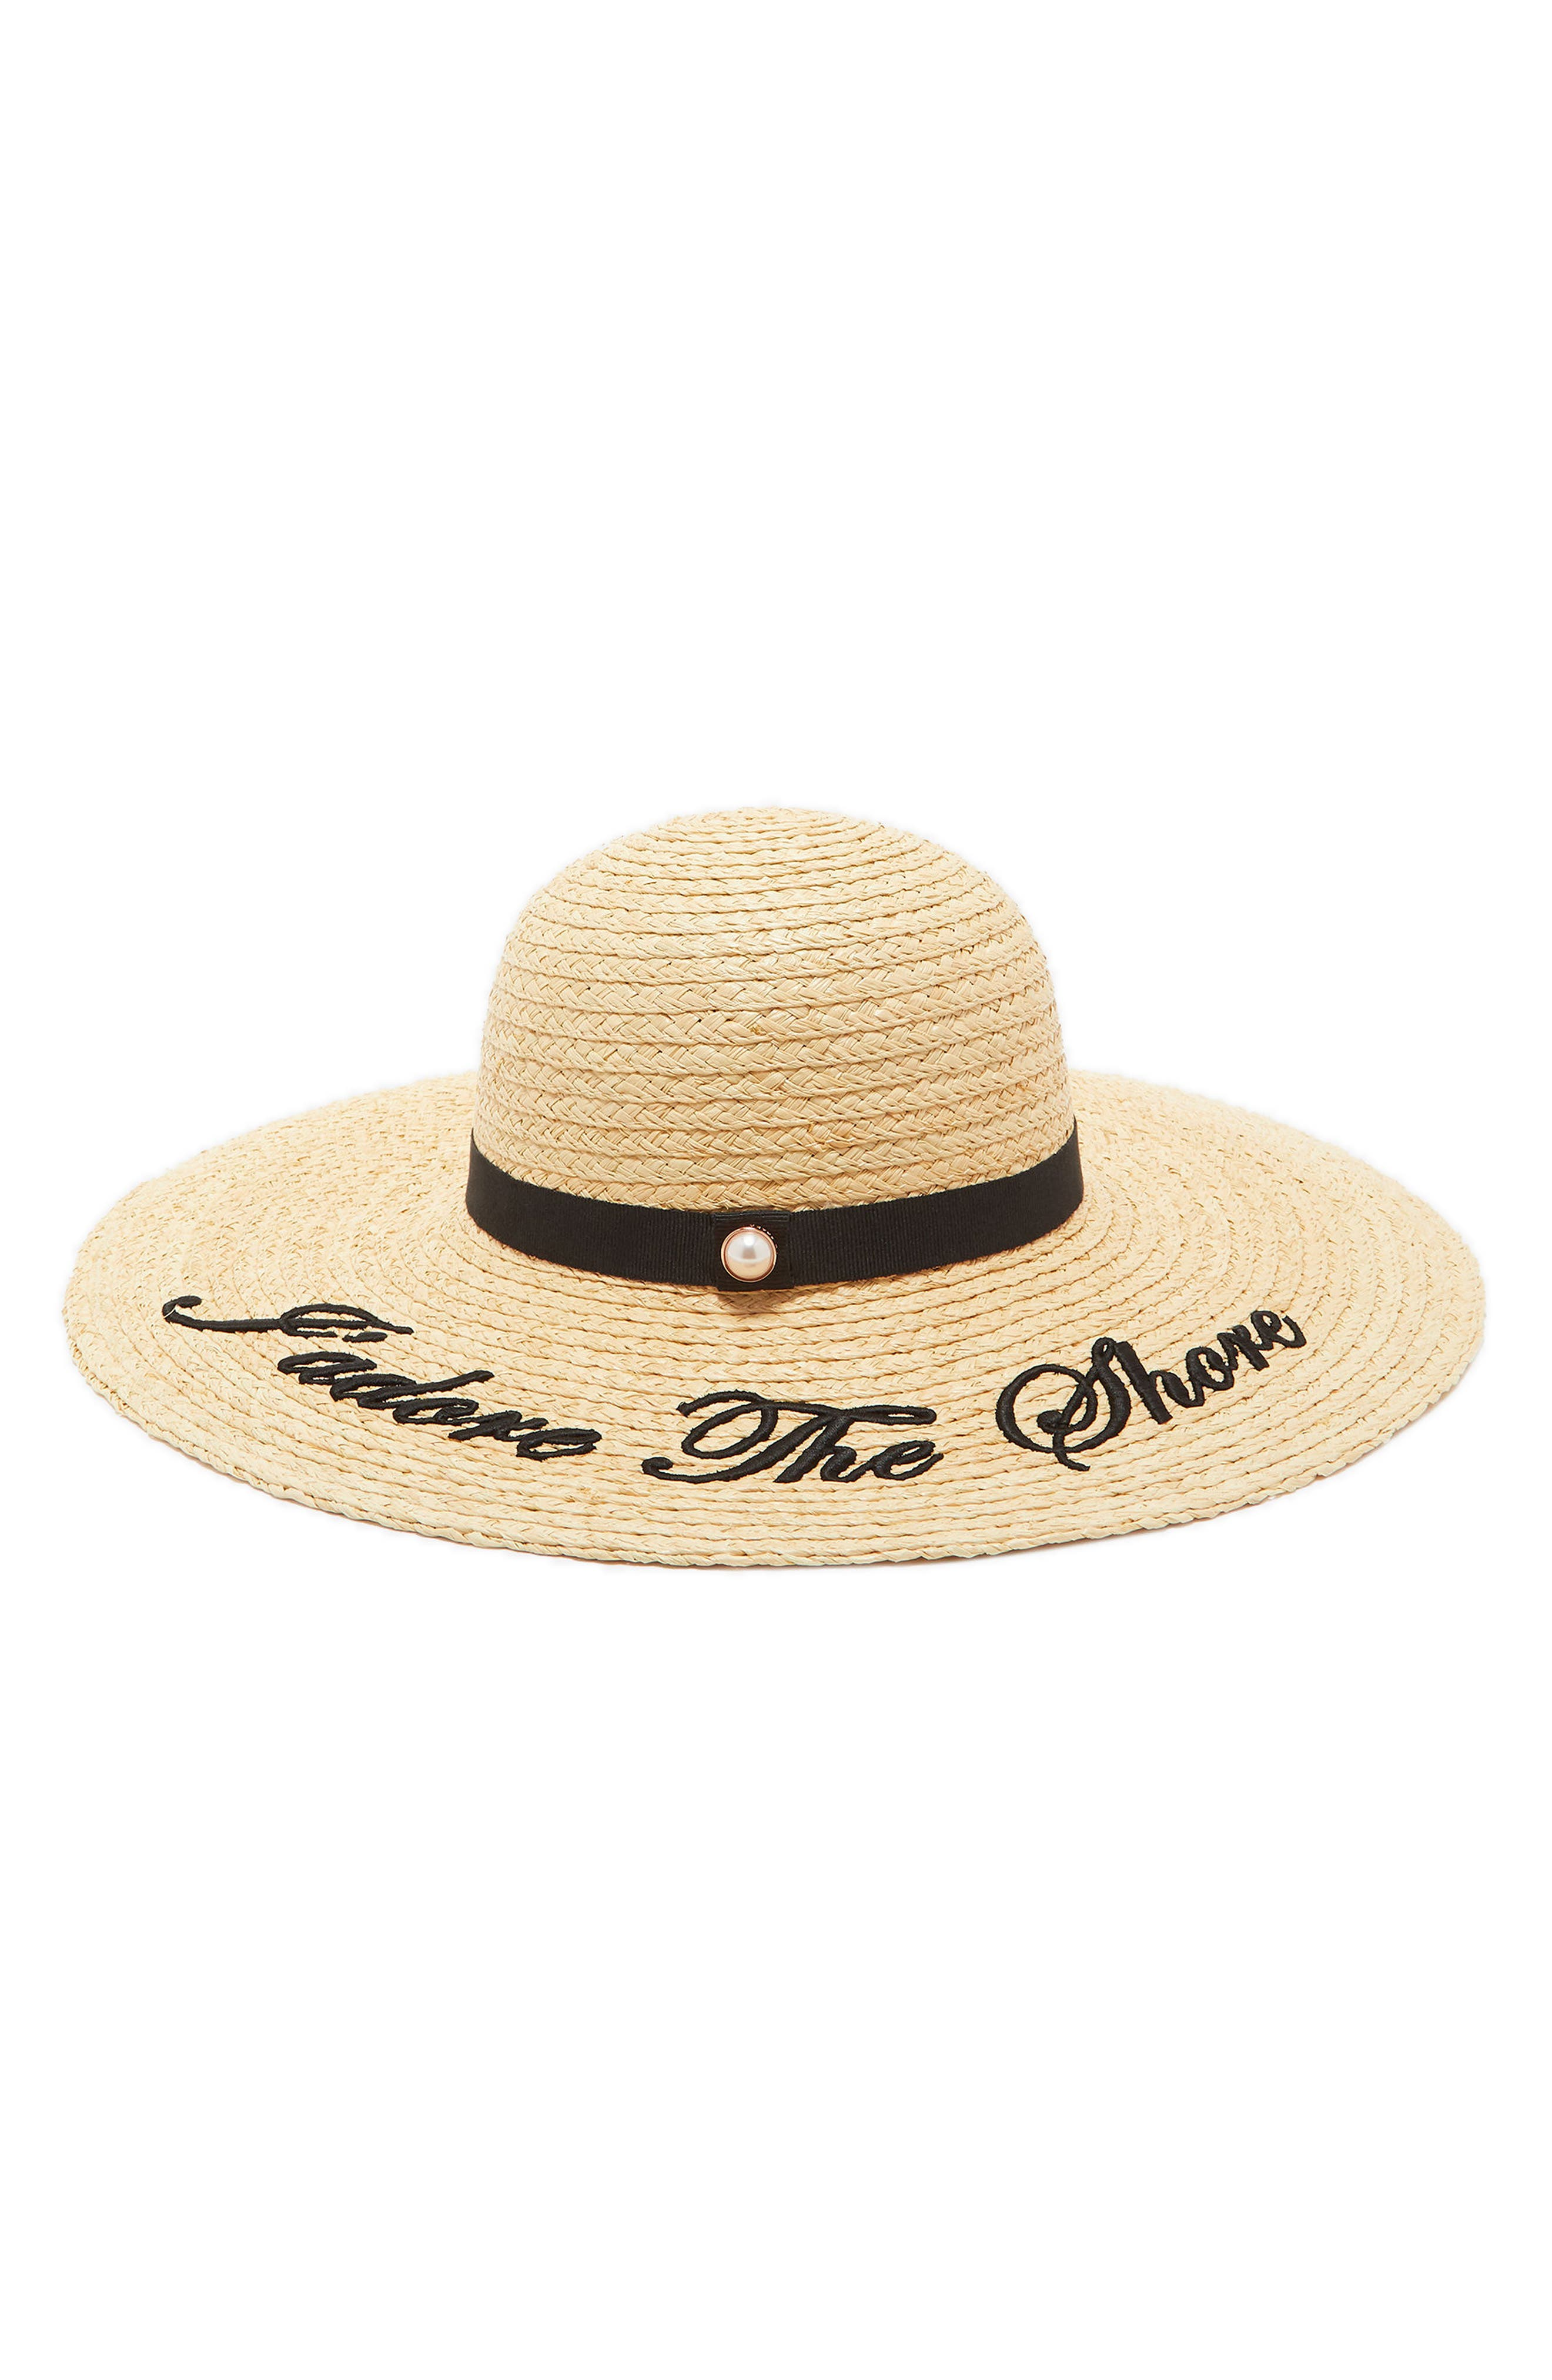 Script Embroidered Floppy Hat,                             Main thumbnail 1, color,                             Straw